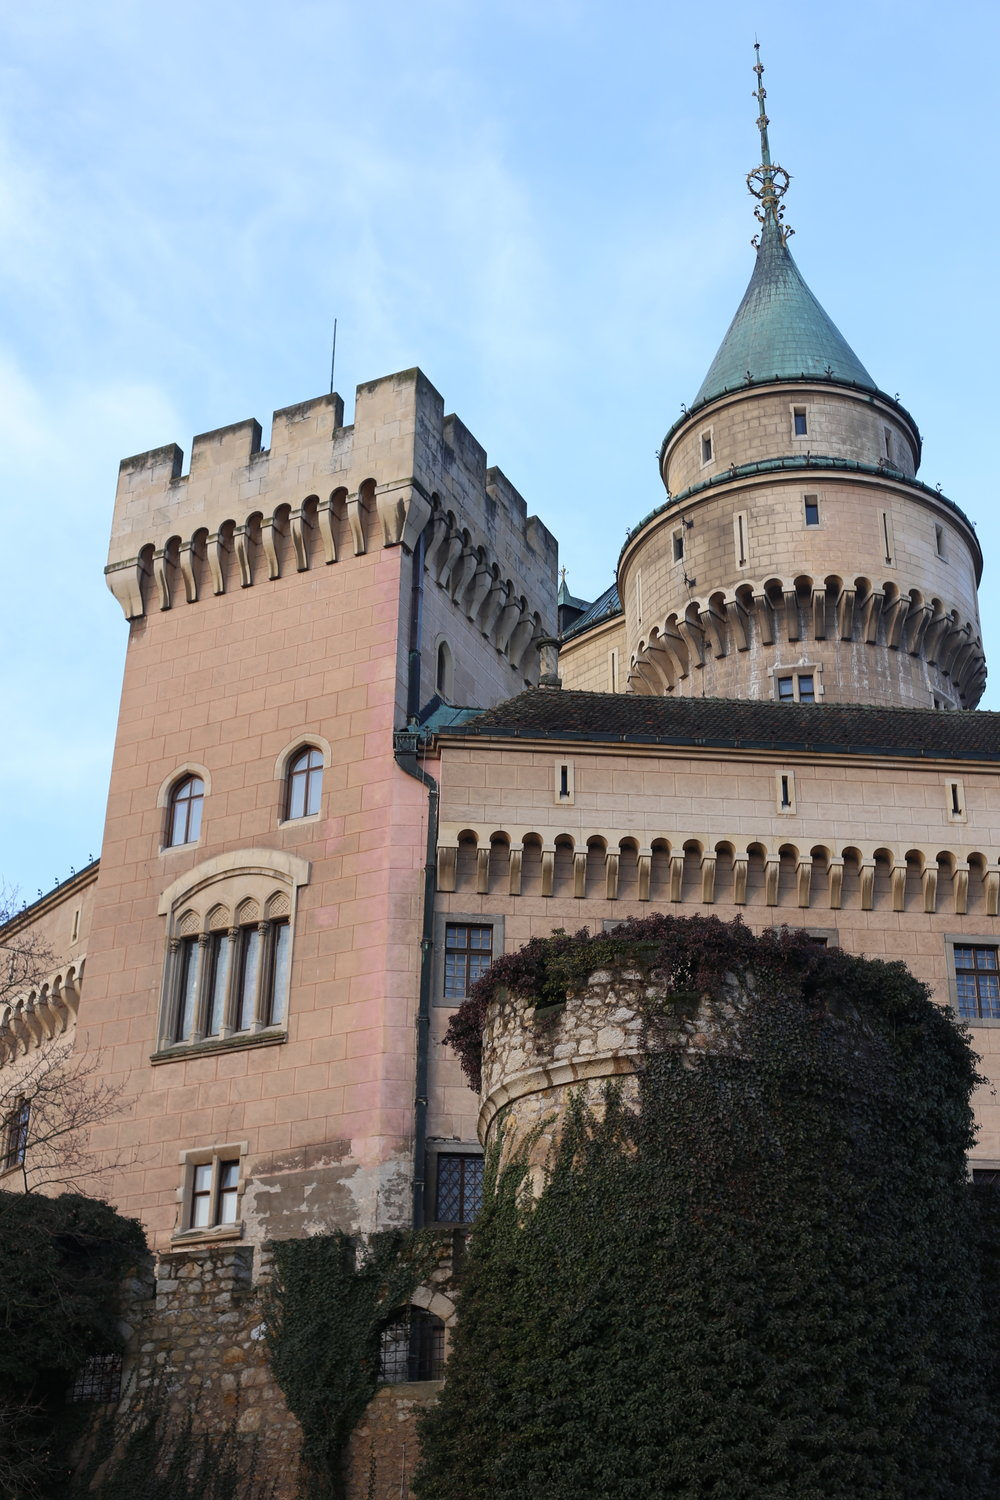 Pink and blue castle turrets - beautiful ivy crawling up the walls - the romantic castles of Slovakia.